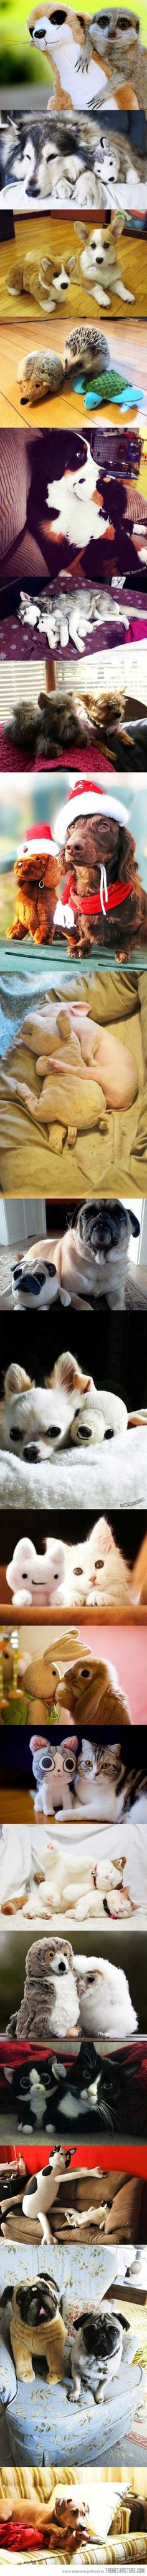 Animals with stuffed animals of themselves…